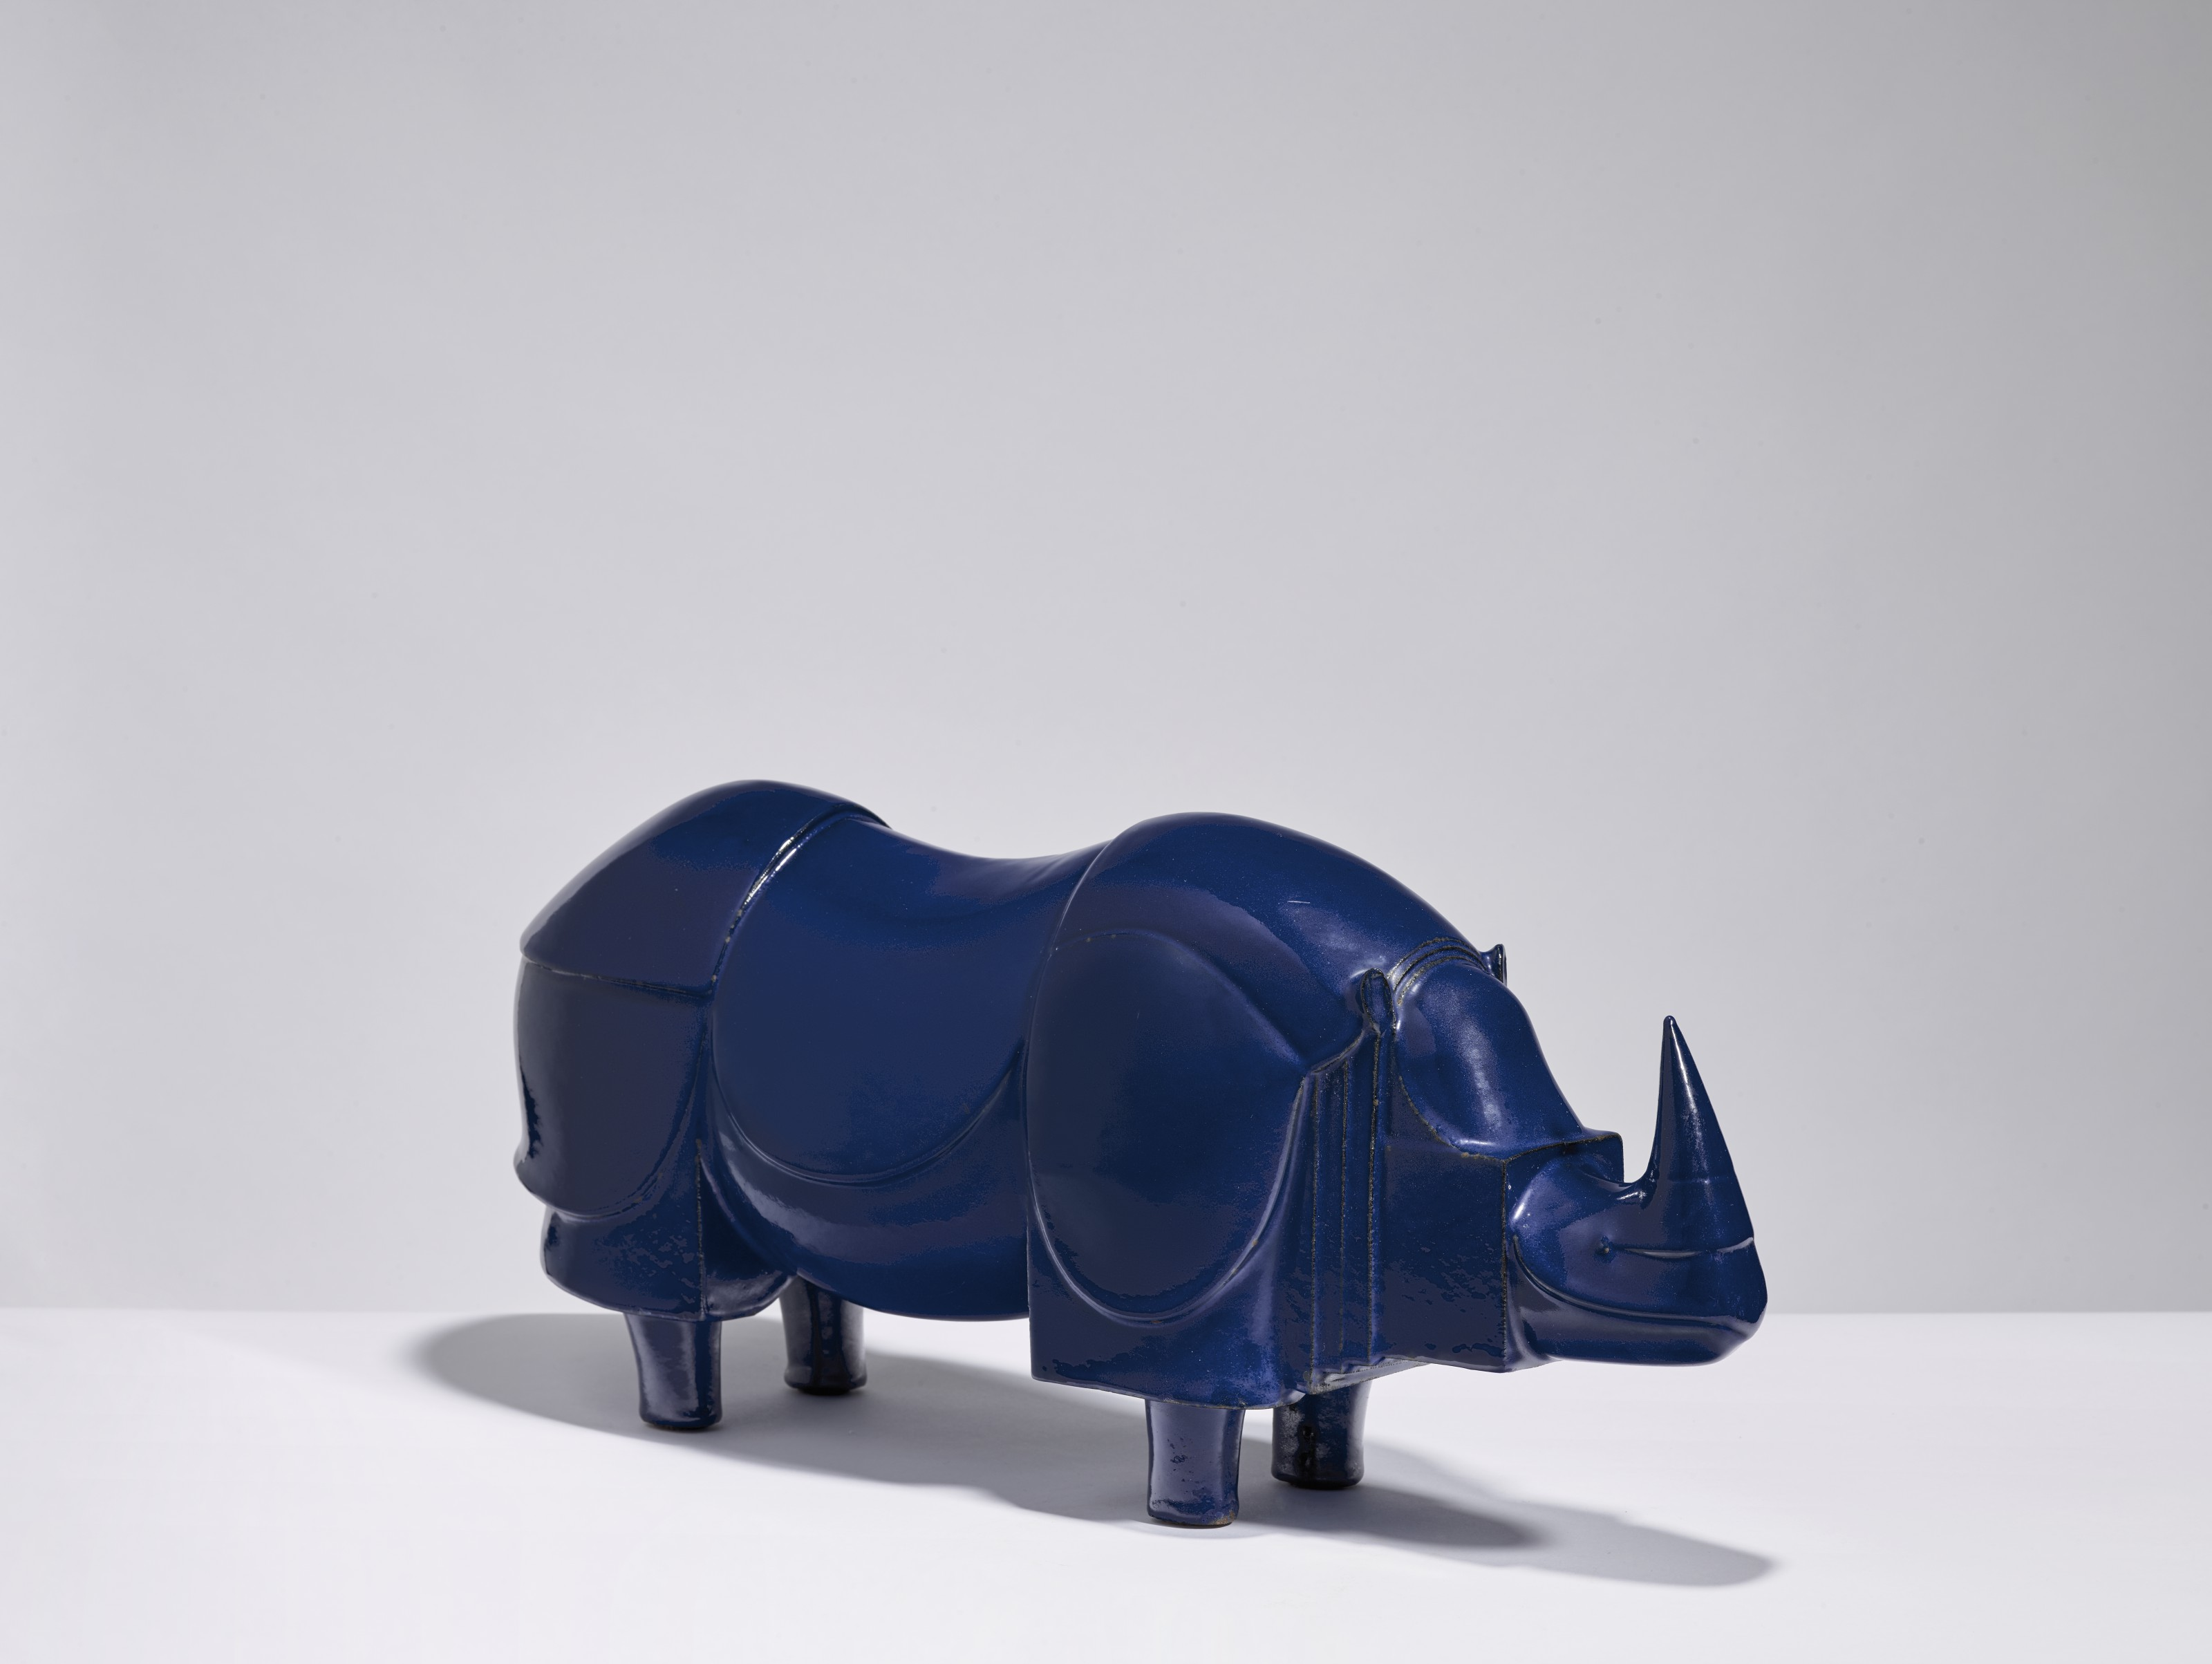 François-Xavier Lalanne (1927-2008), 'Rhinocéros', 1981. 9½ x 21½ x 6½  in (24.5 x 55 x 16.5 cm). Estimate $35,000-45,000. Offered in Design on 27 May 2021 at Christie's in New York